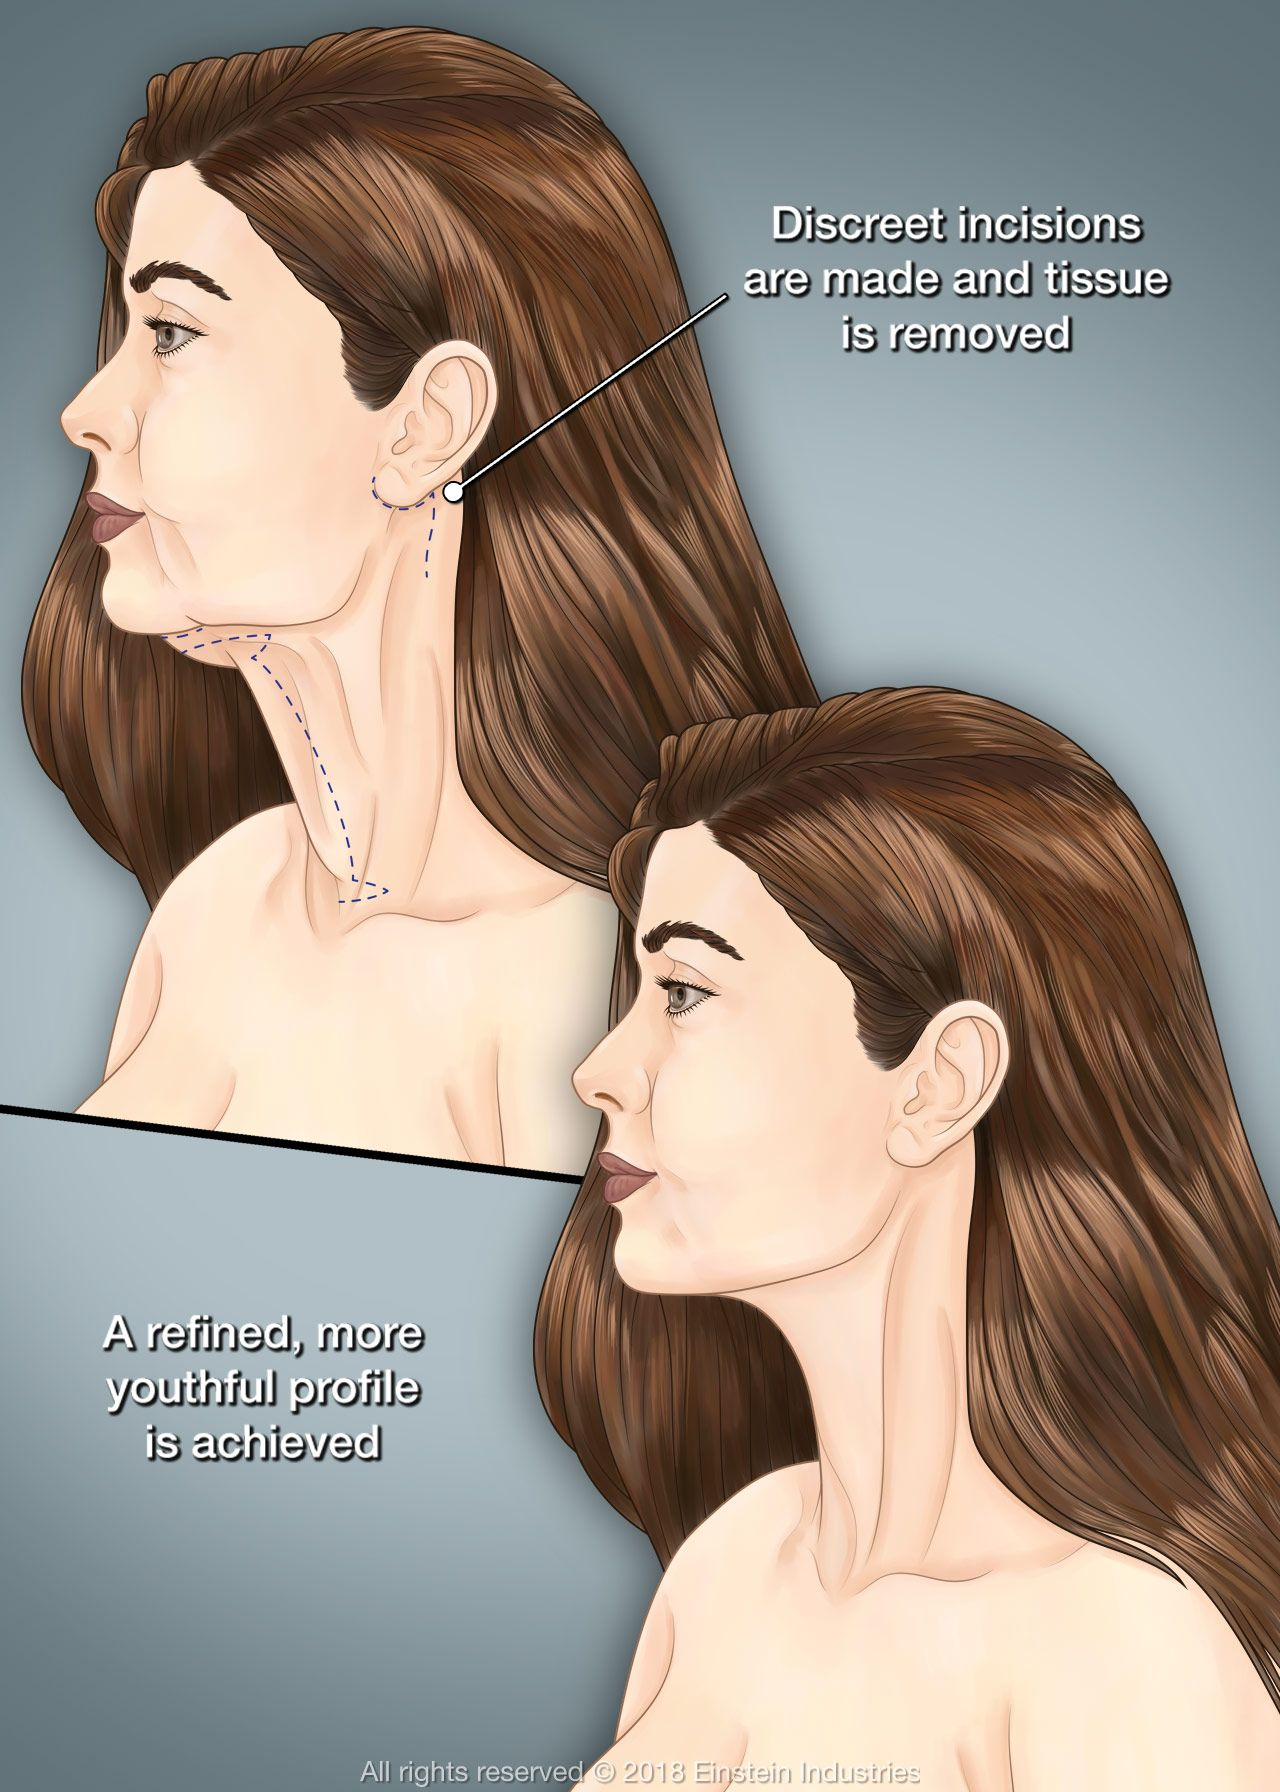 Woman before and after neck lift